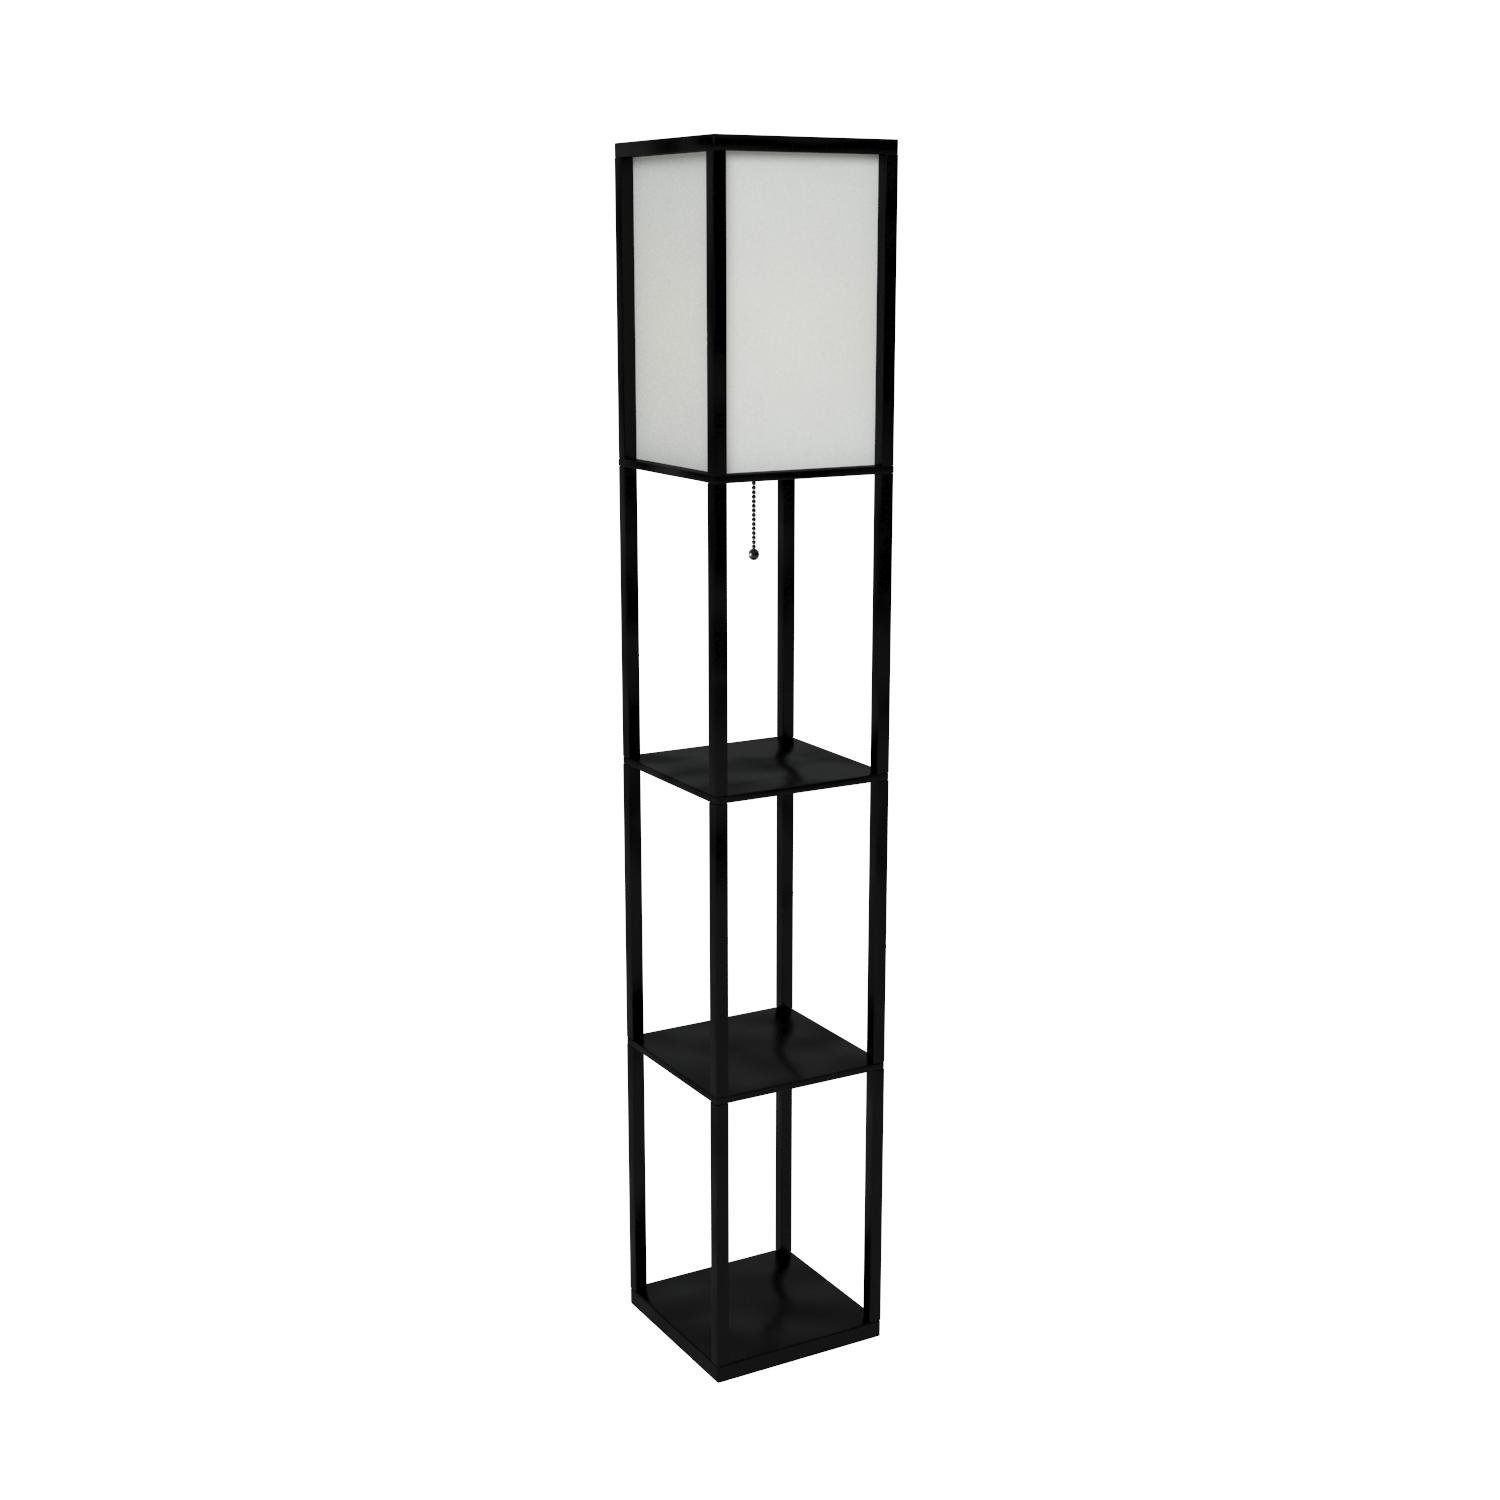 Simple Designs Home LF1014-BLK Etagere Organizer Storage Shelf Linen Shade Floor Lamp, Black by Simple Designs Home (Image #7)